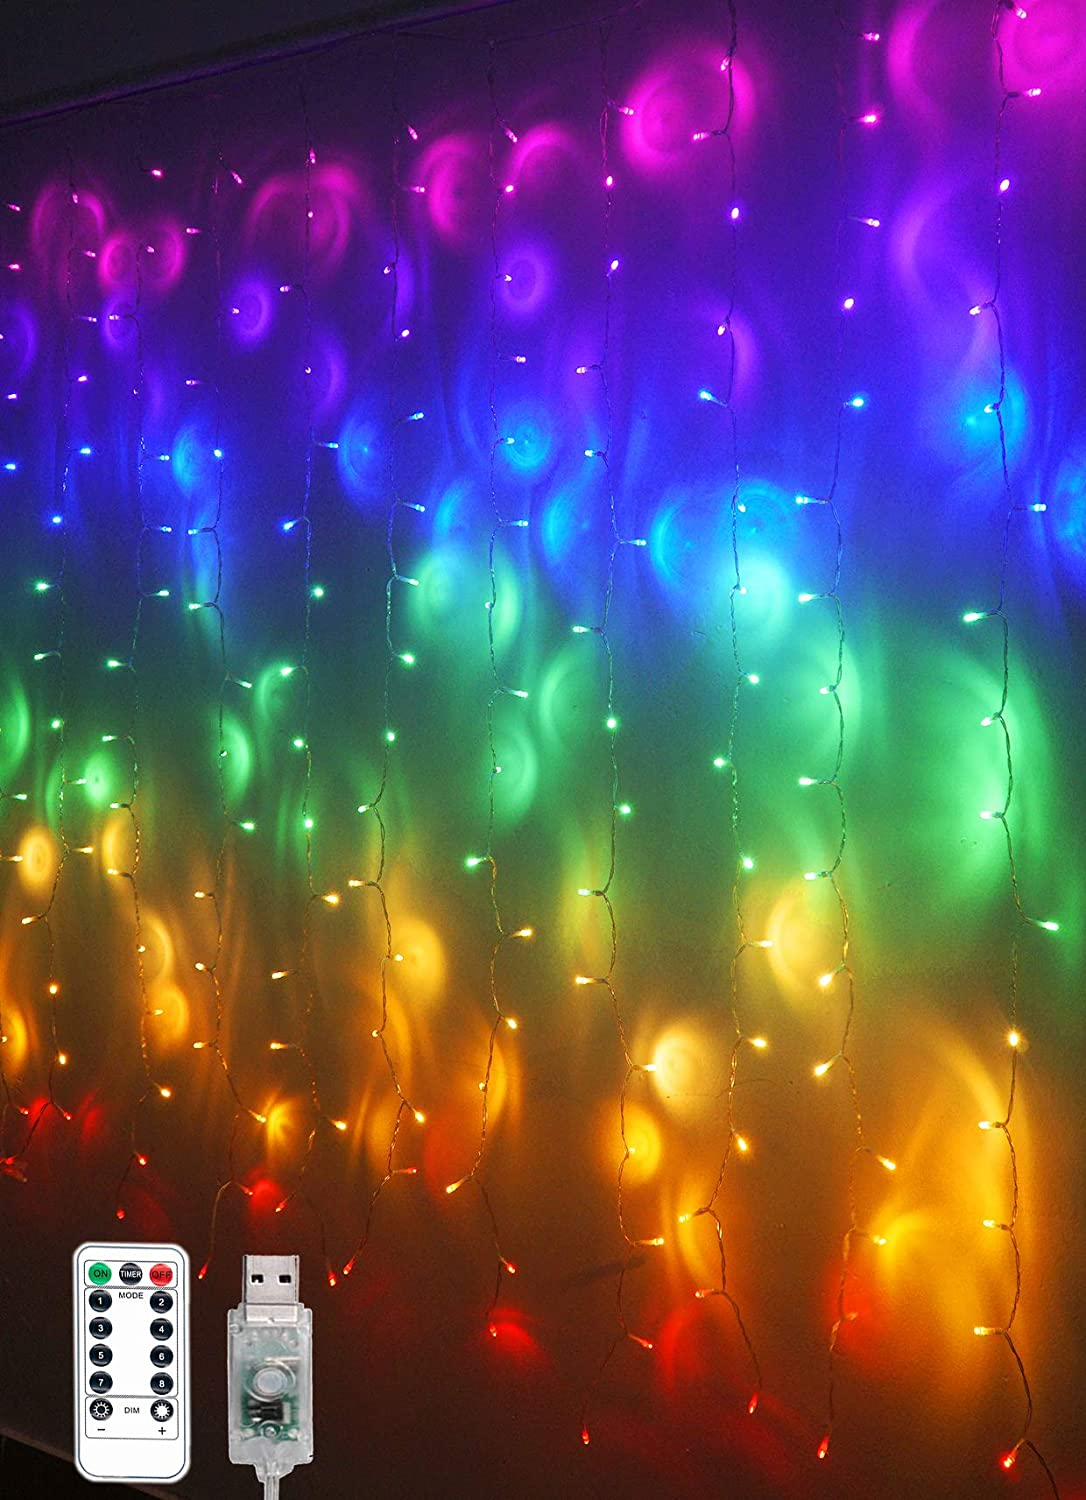 Rainbow Fairy String Curtain Lights with Remote, Twinkle LED Icicle Rainbow Lights Curtain for Girls Room, Bedroom, Teen Room, Kids Room, Unicorn Room, Party, Holiday Décor (Rainbow)